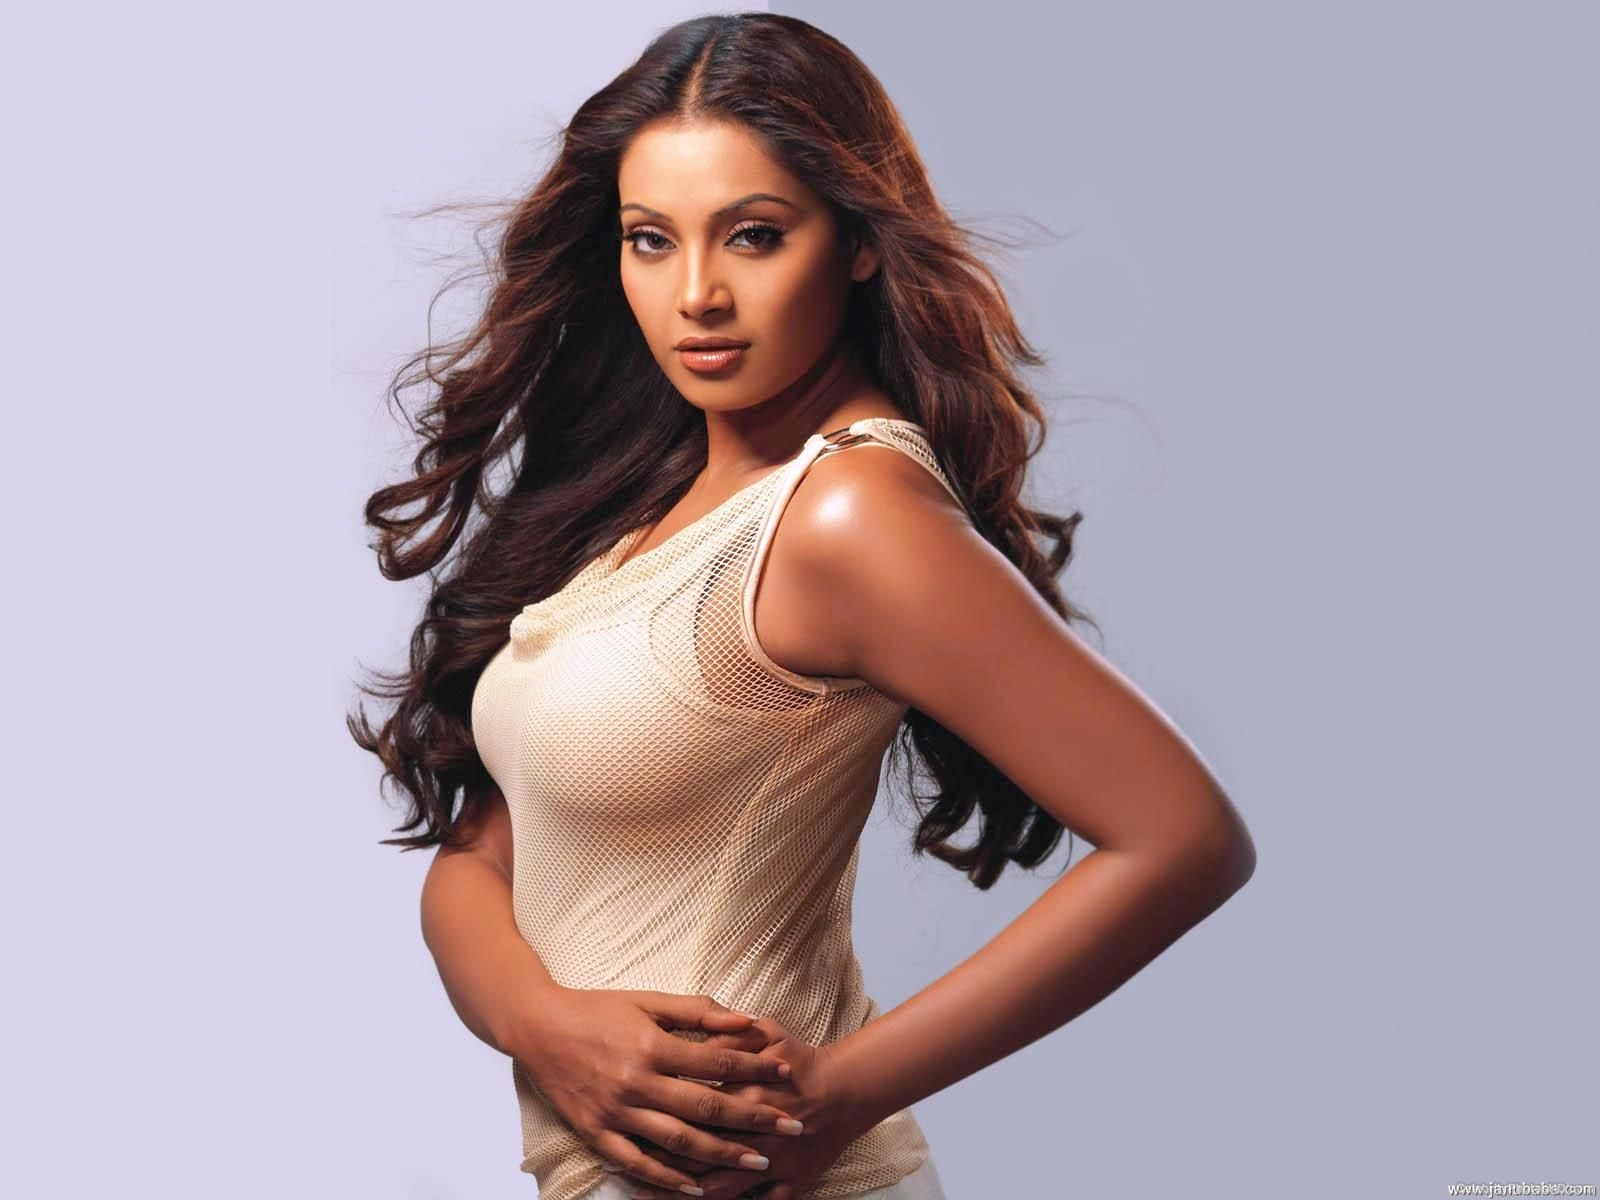 bipasha-basu-hd-wallpapers-20